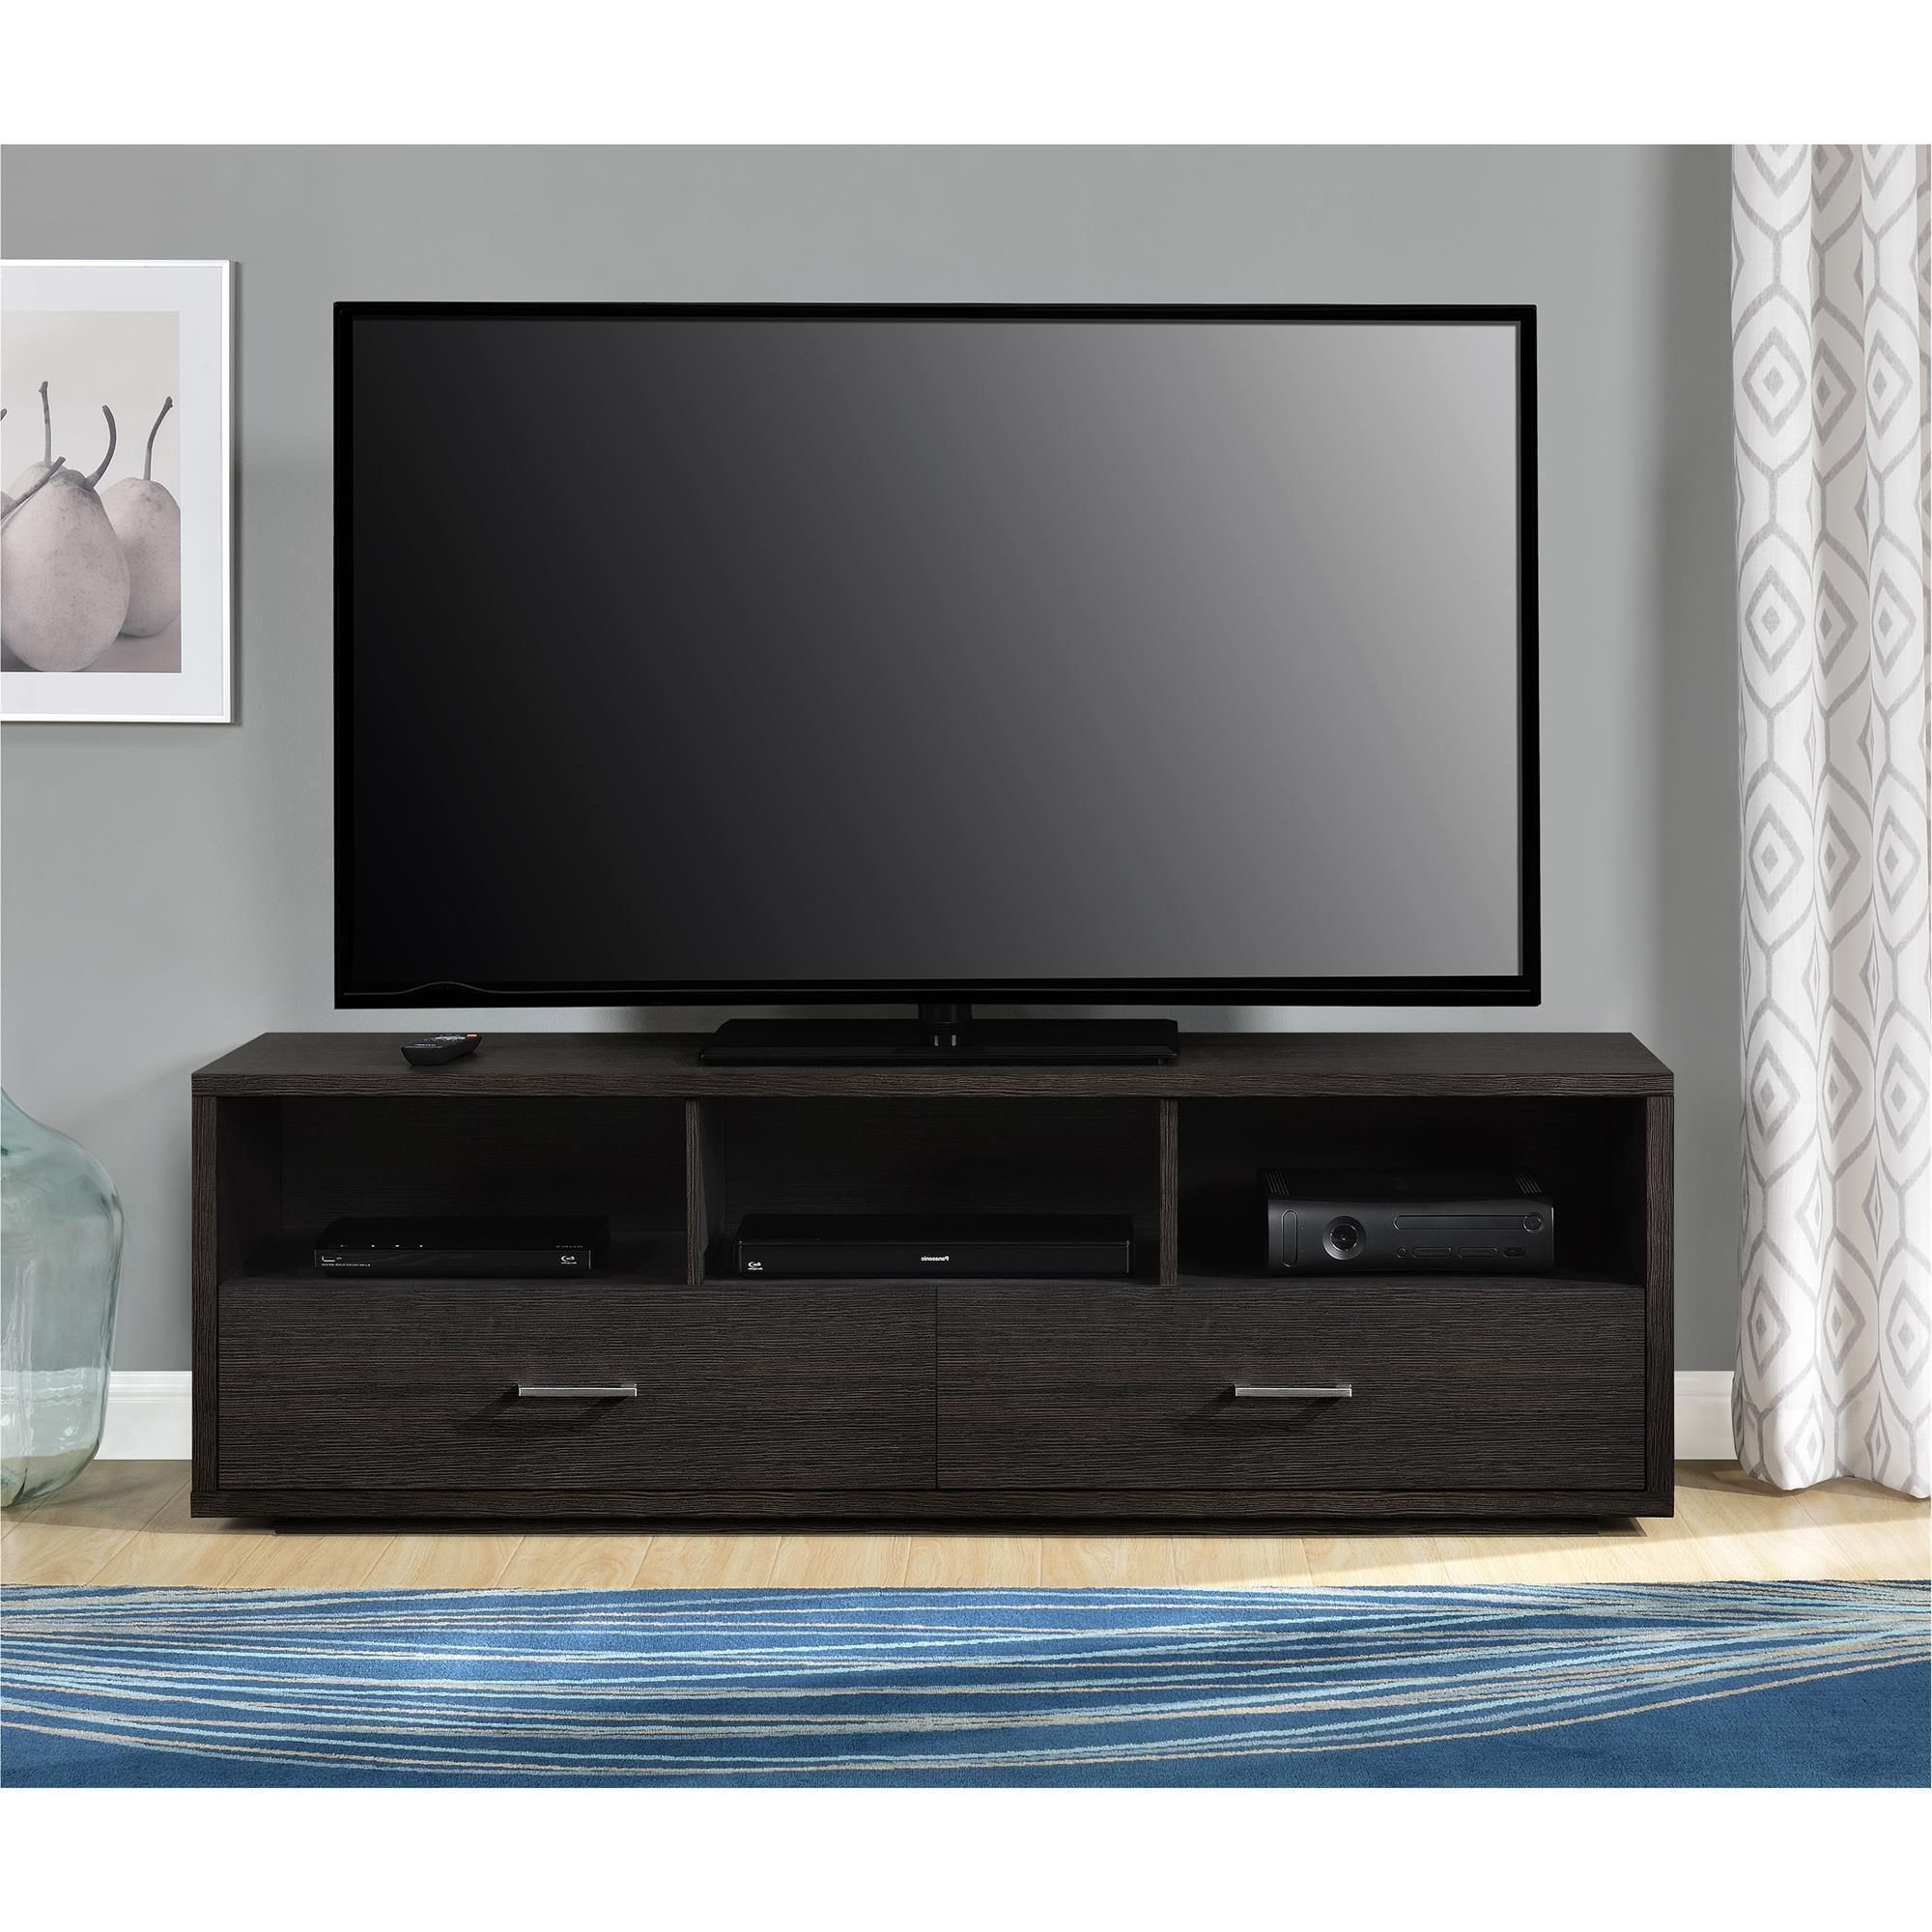 The Altra Clark 70 Inch Tv Stand Helps To Make A Statement In Your Throughout Favorite Tv Stands For 70 Inch Tvs (View 2 of 20)